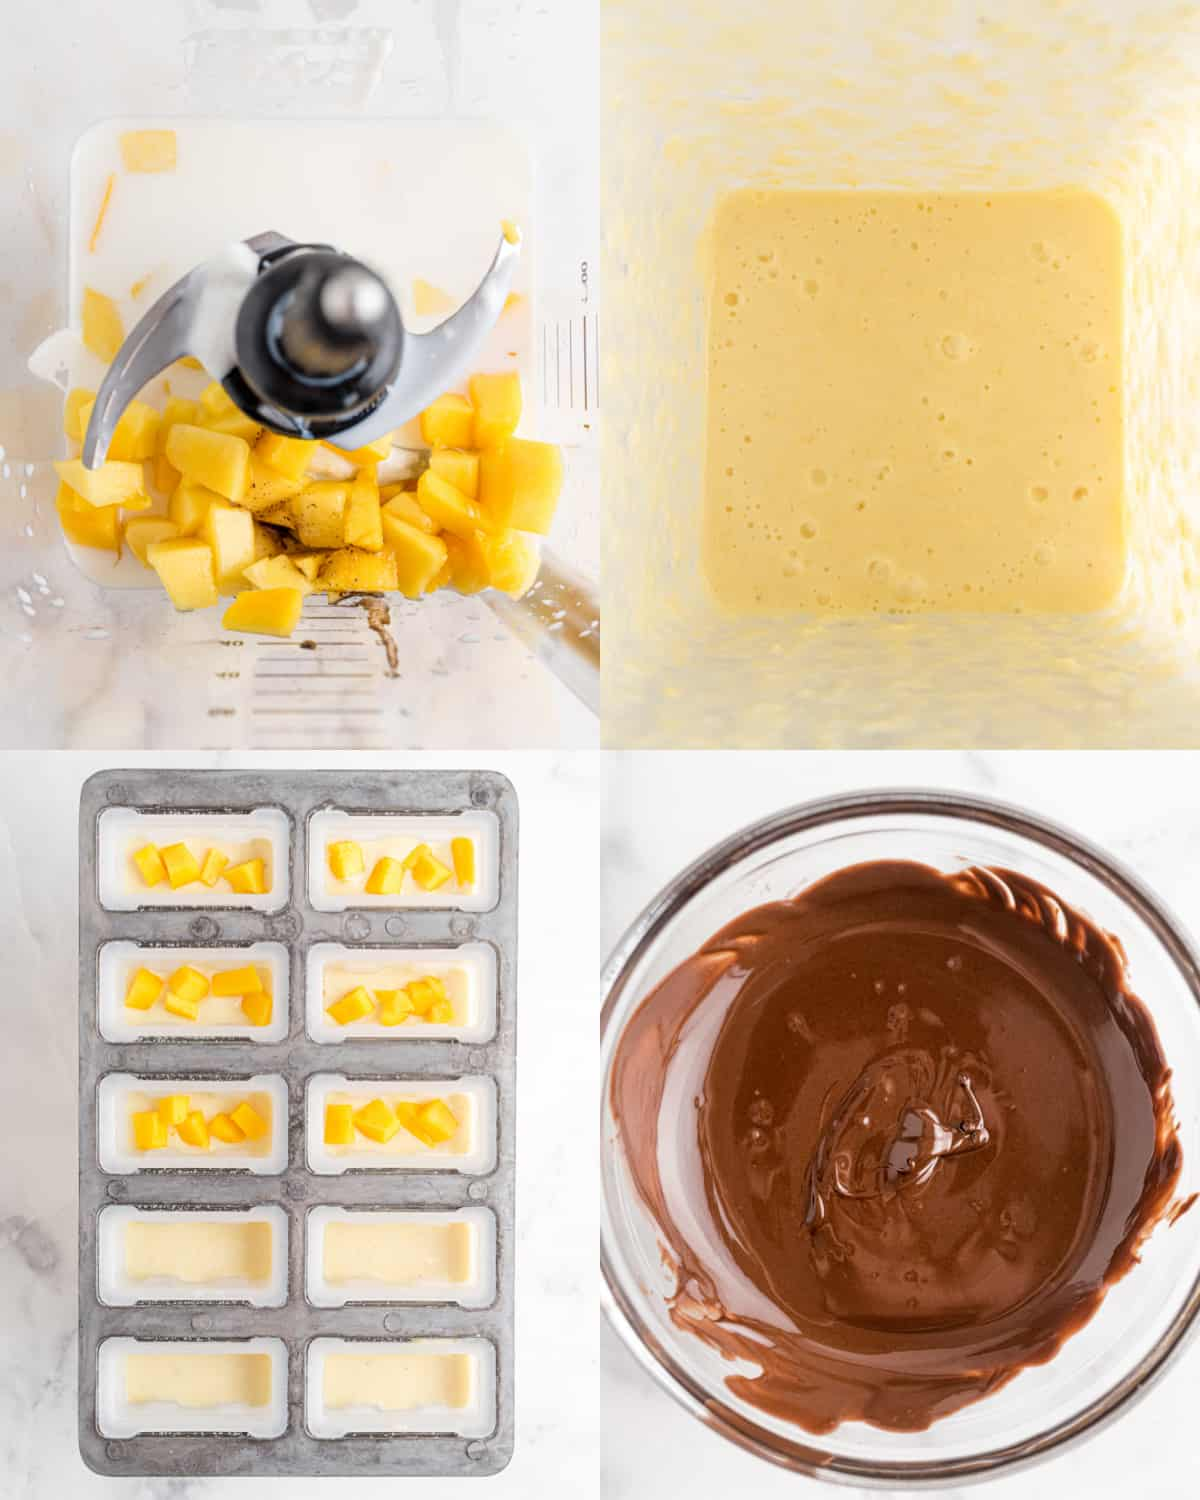 processing ingredients for mango popsicles before freezing